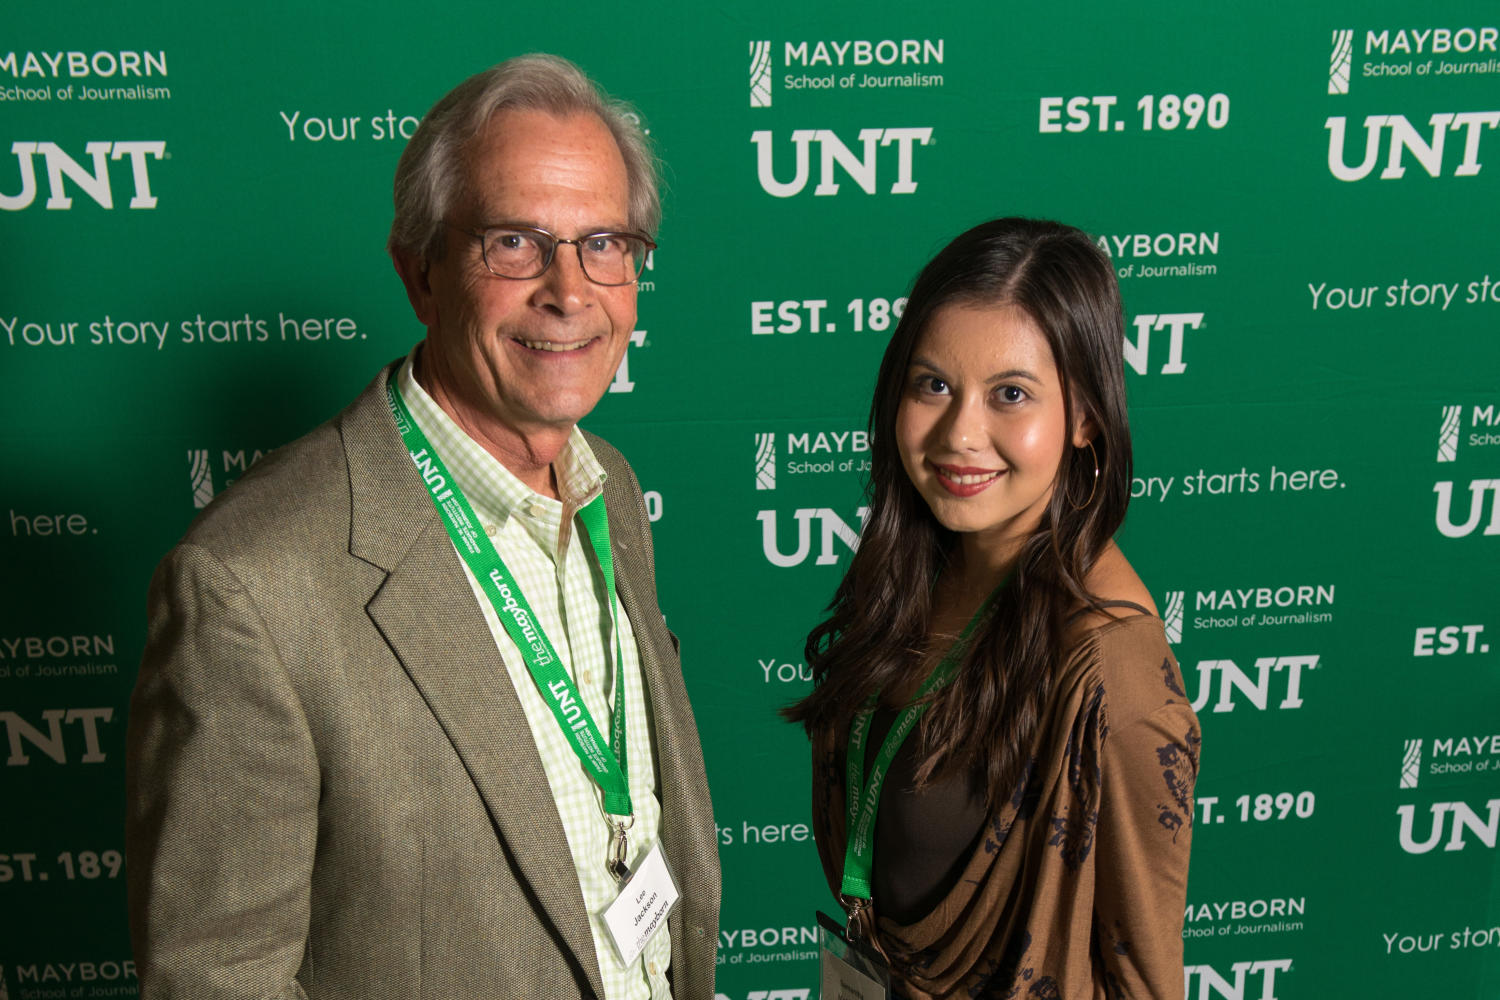 """[Chancellor Lee Jackson and Samantha McDonald], Photograph of UNT System Chancellor Lee Jackson standing with Samantha McDonald, a winner of the Minority College Student Award, in front of a backdrop detailed with Mayborn and UNT logos and the tagline """"Your story starts here."""" They are being photographed at the Austin Ranch Banquet Hall during the Mayborn Literary Nonfiction Conference on the grounds of the Hilton DFW Lakes Executive Conference Center in Grapevine, Texas.,"""